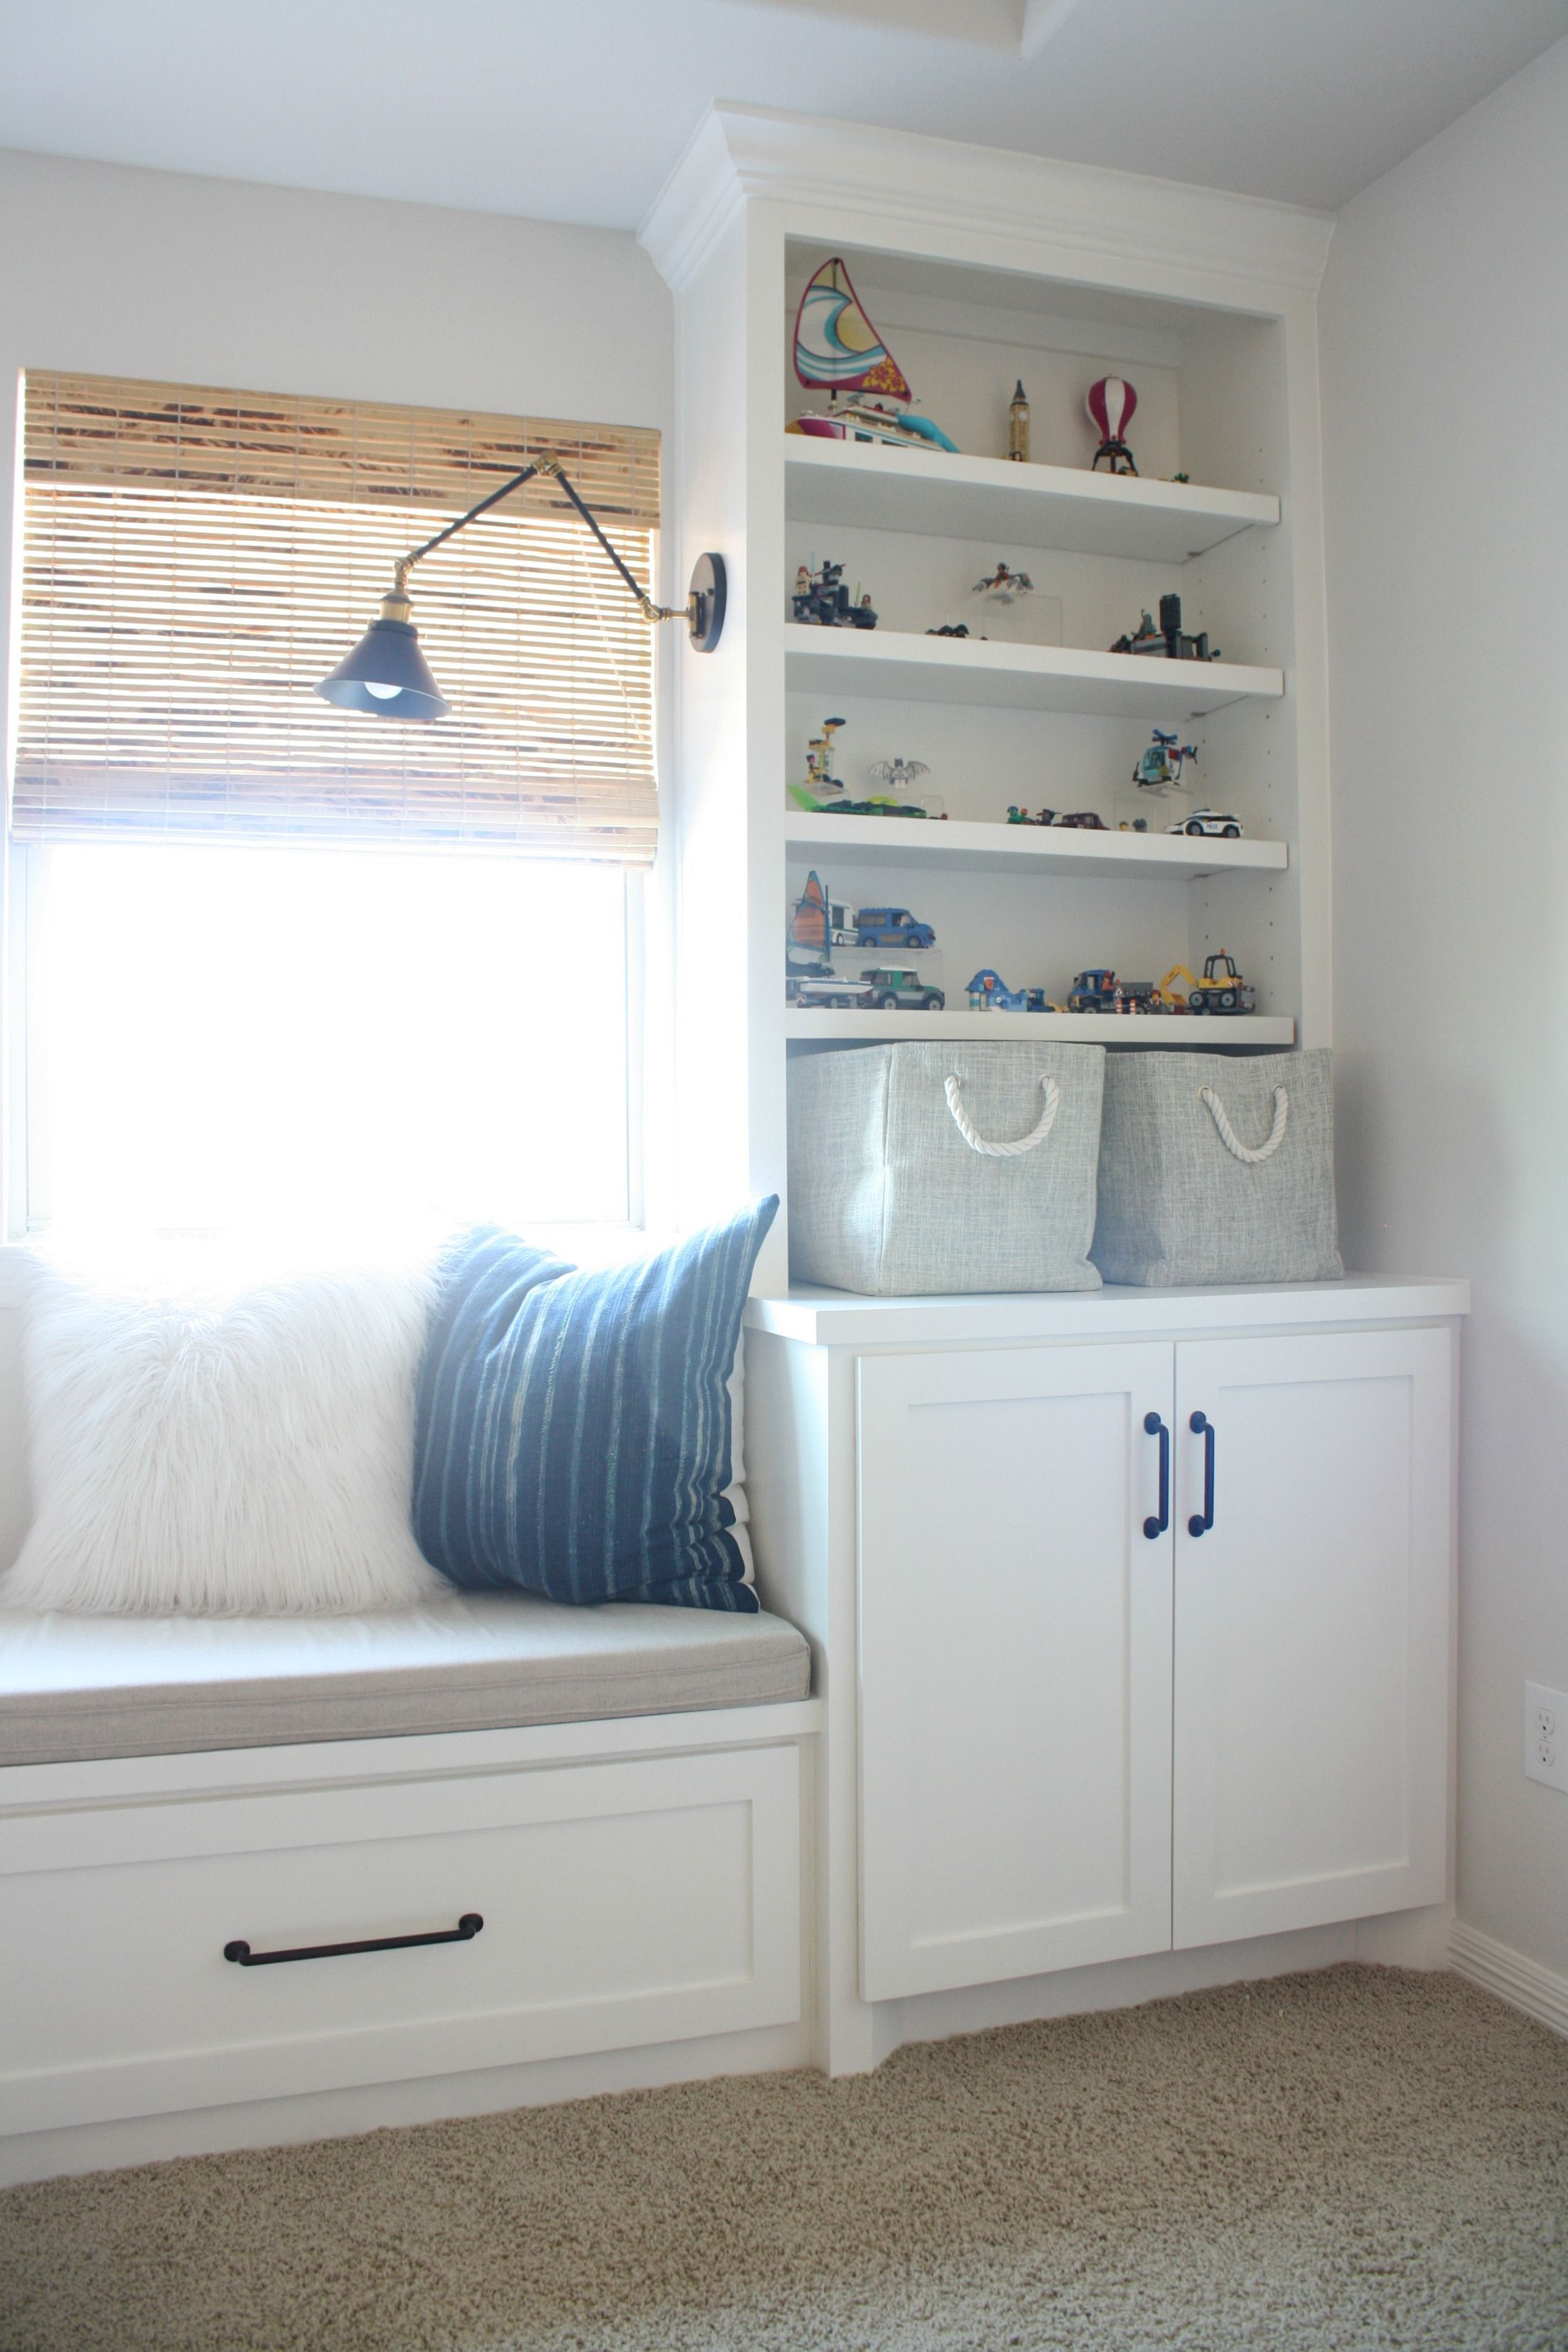 Playroom Makeover With Built Ins, Playroom Organization, Toy Storage